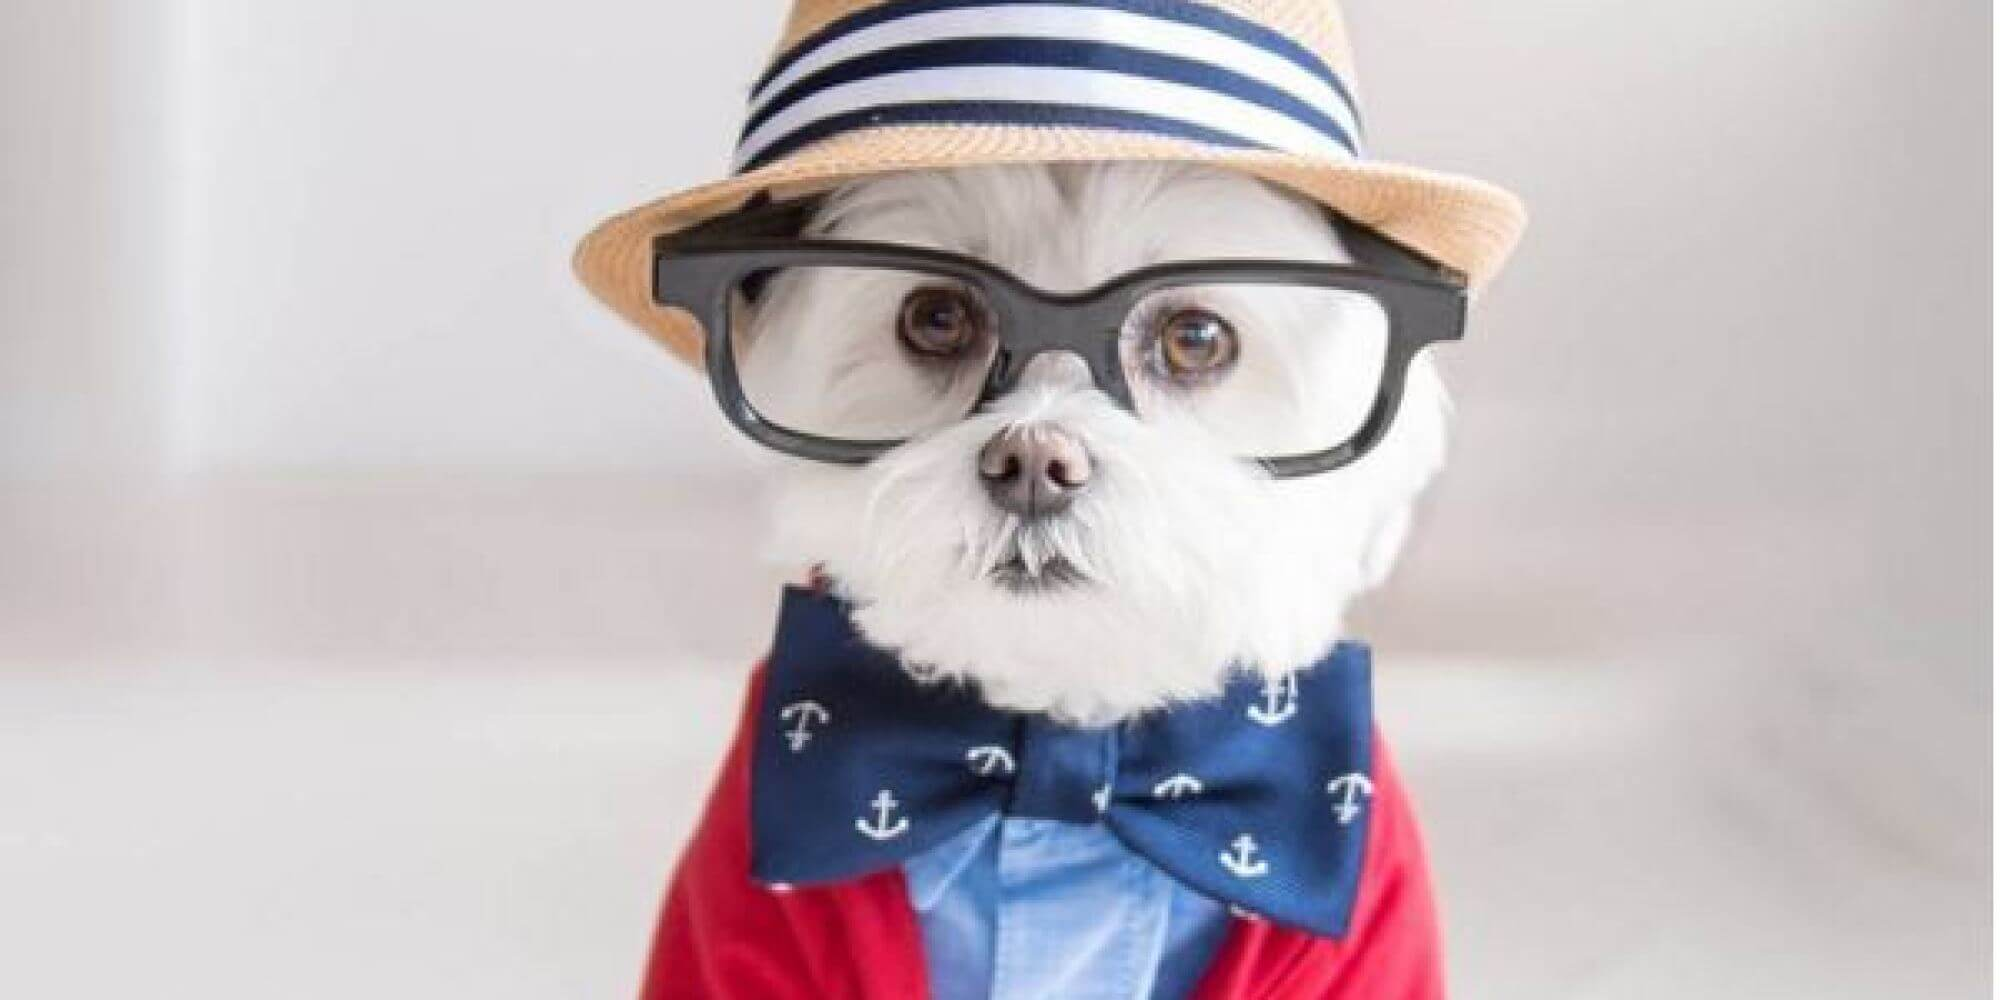 Hipster dog went to the cafe before it was cool